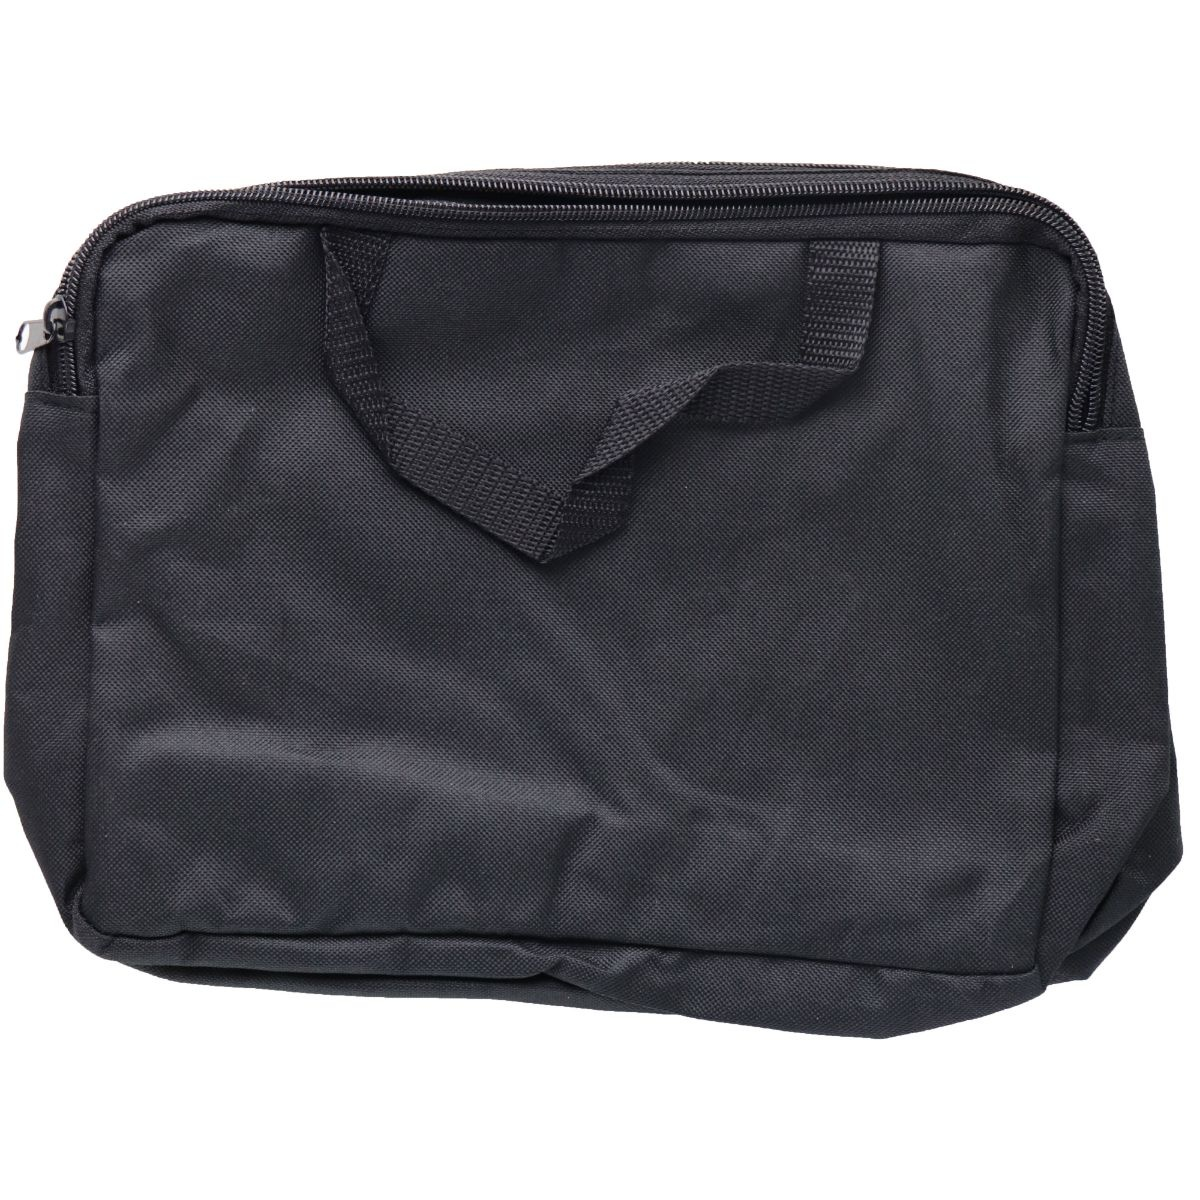 Insignia Pouch Case for Ingisnia (NS-DS9PDVD15) DVD Players - Black